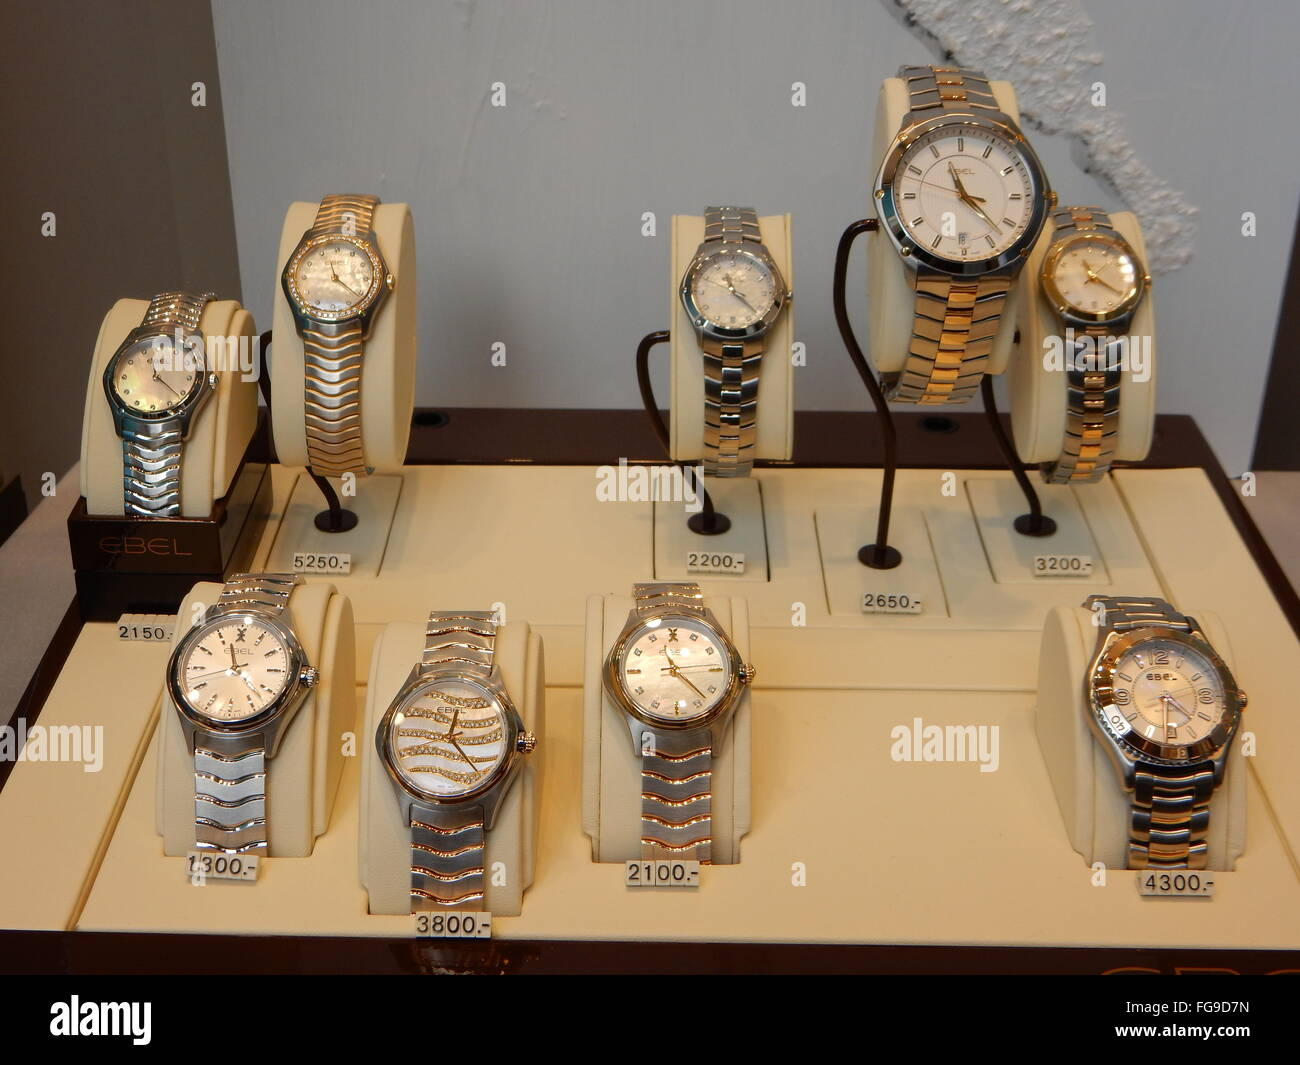 expensive watches in a show window of a watch maker in Bonn, Germany - Stock Image